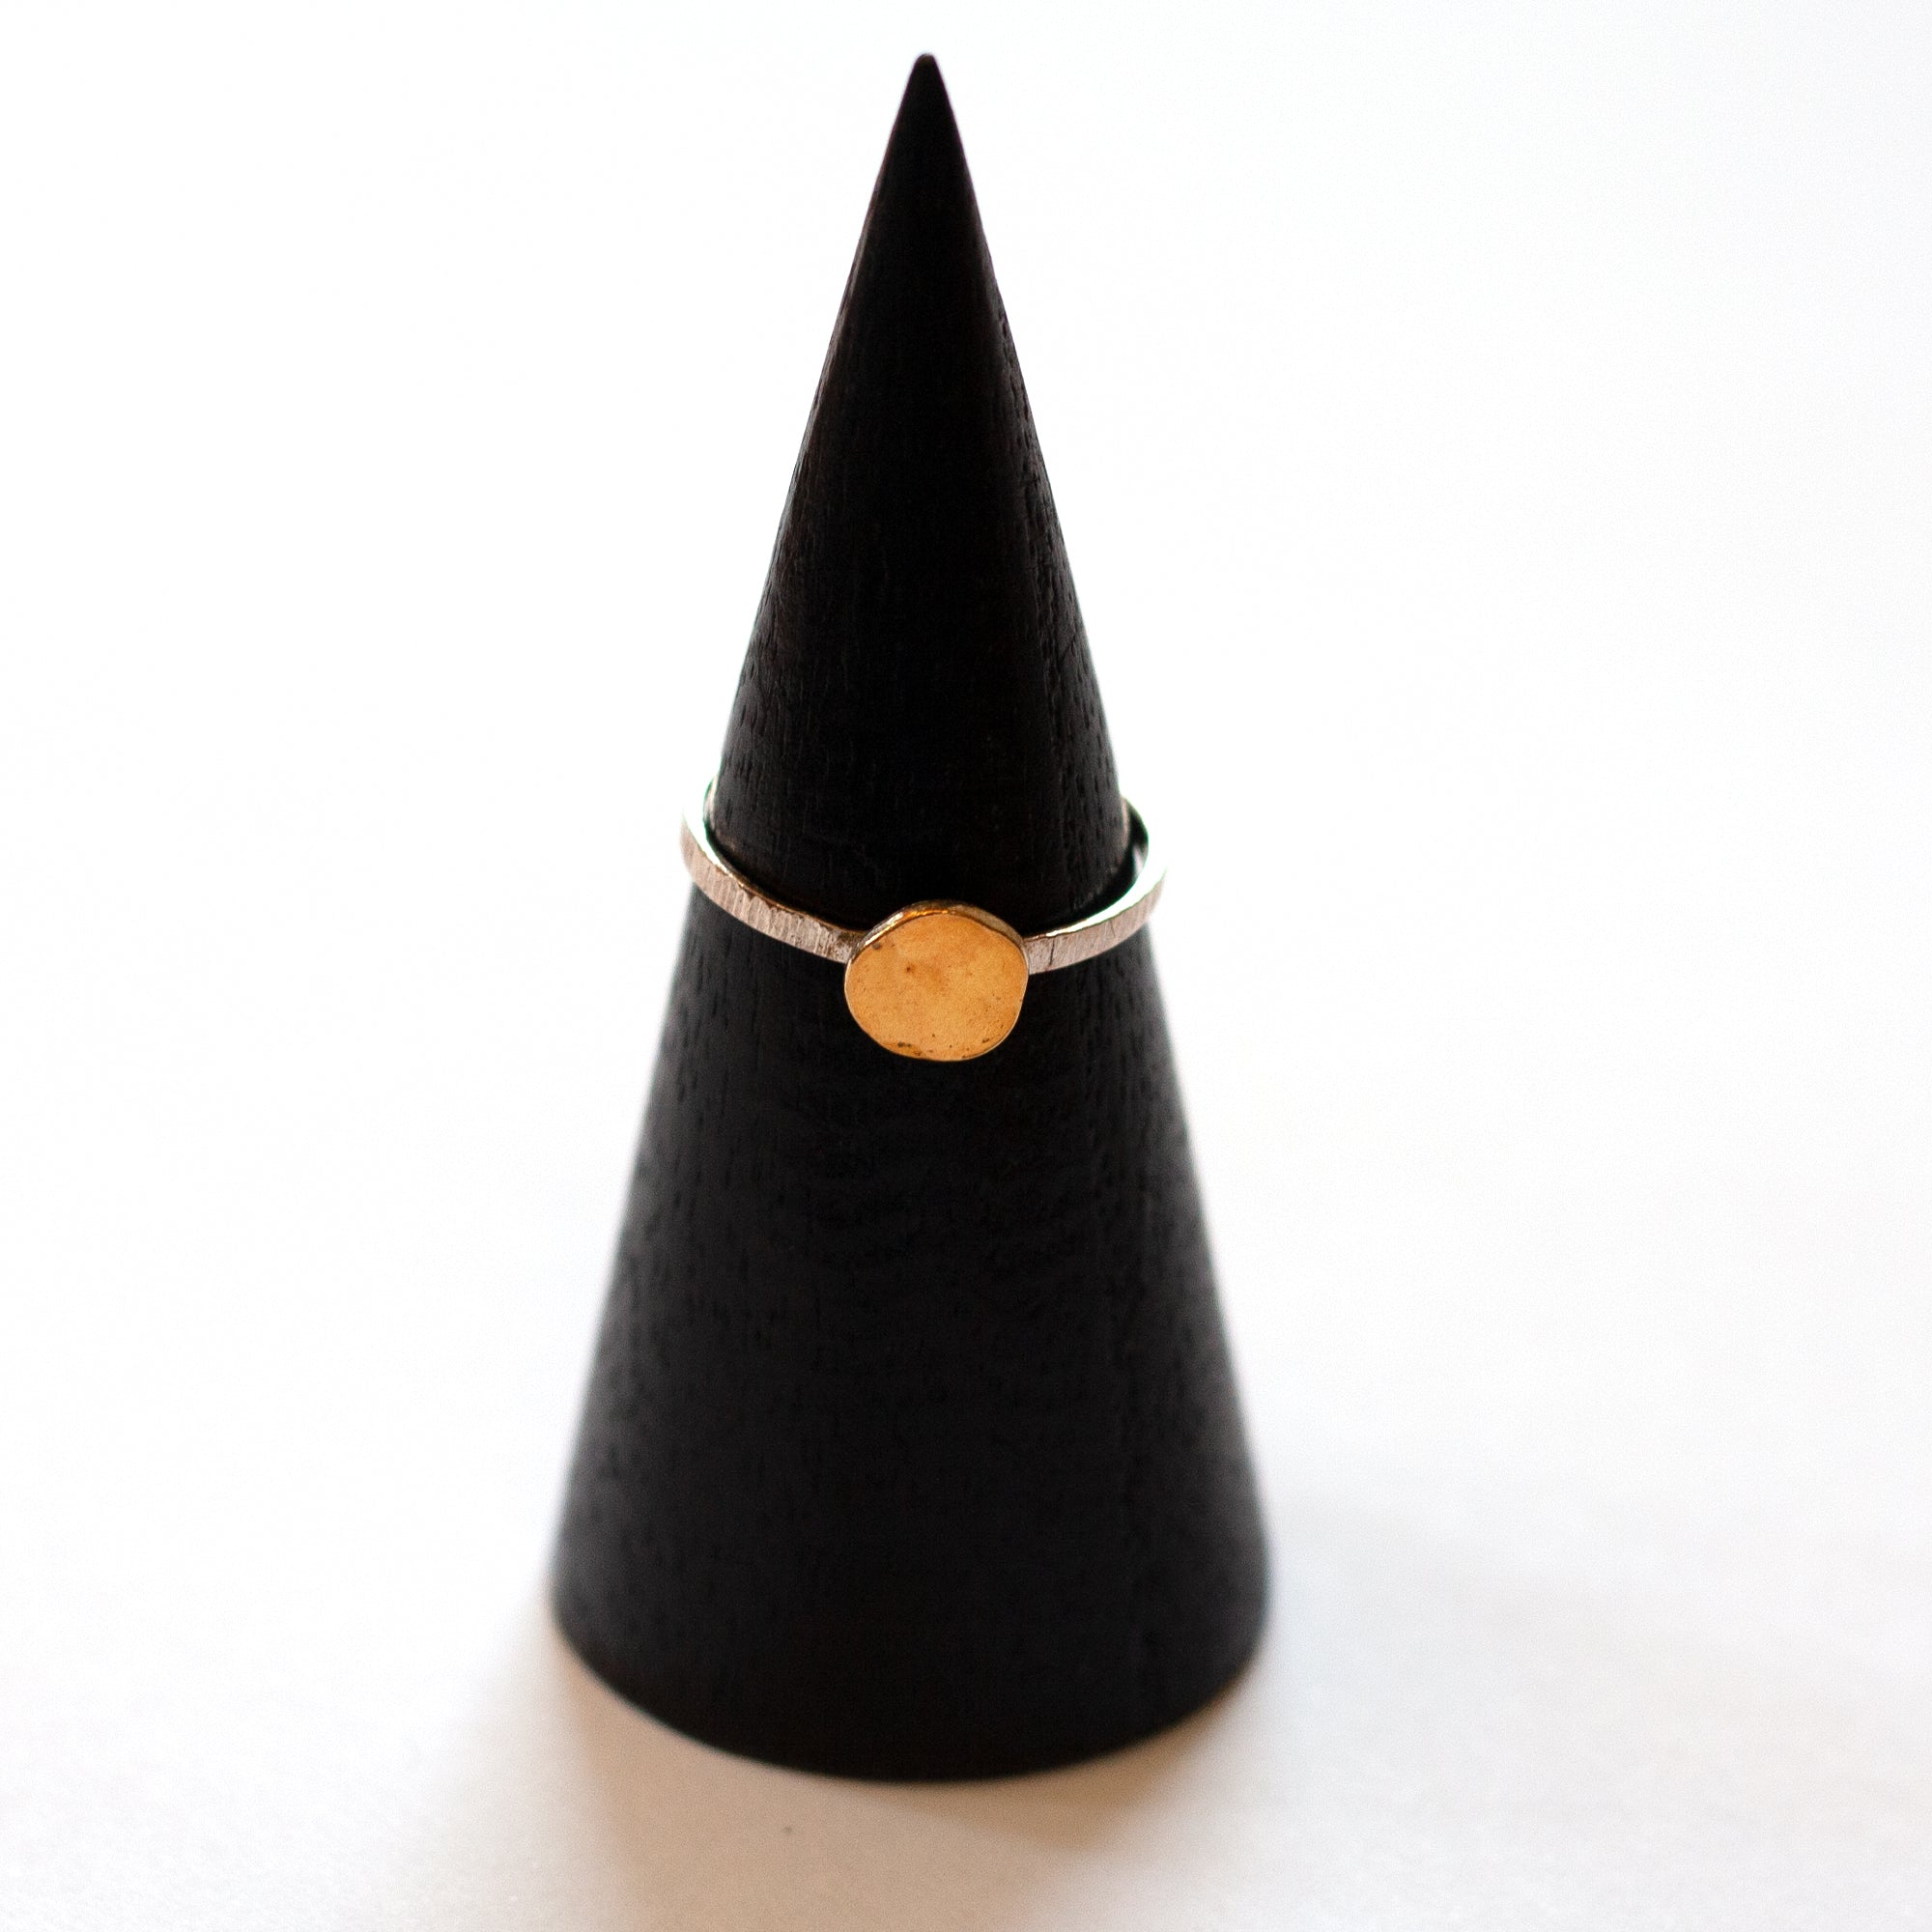 Ruth Casey - Keum 24ct Gold and Sterling Silver Stacker Ring (rca025)